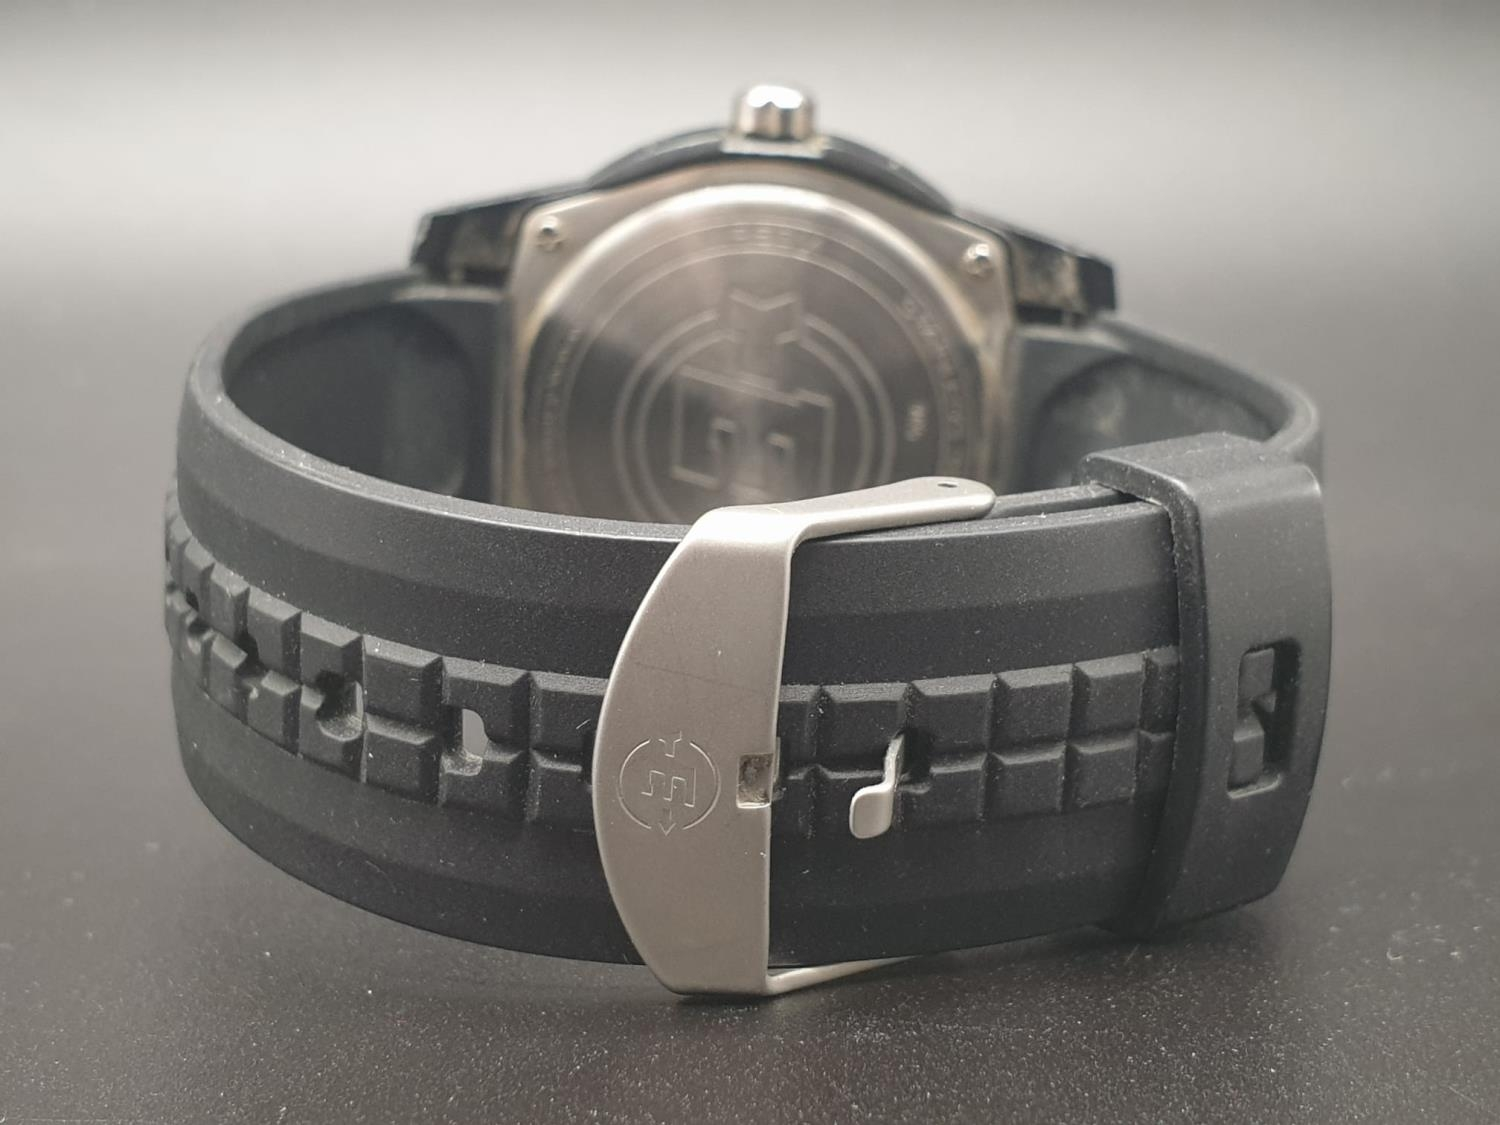 Timex Expedition Watch. Black rubber strap. Black dial. As found. - Image 6 of 9